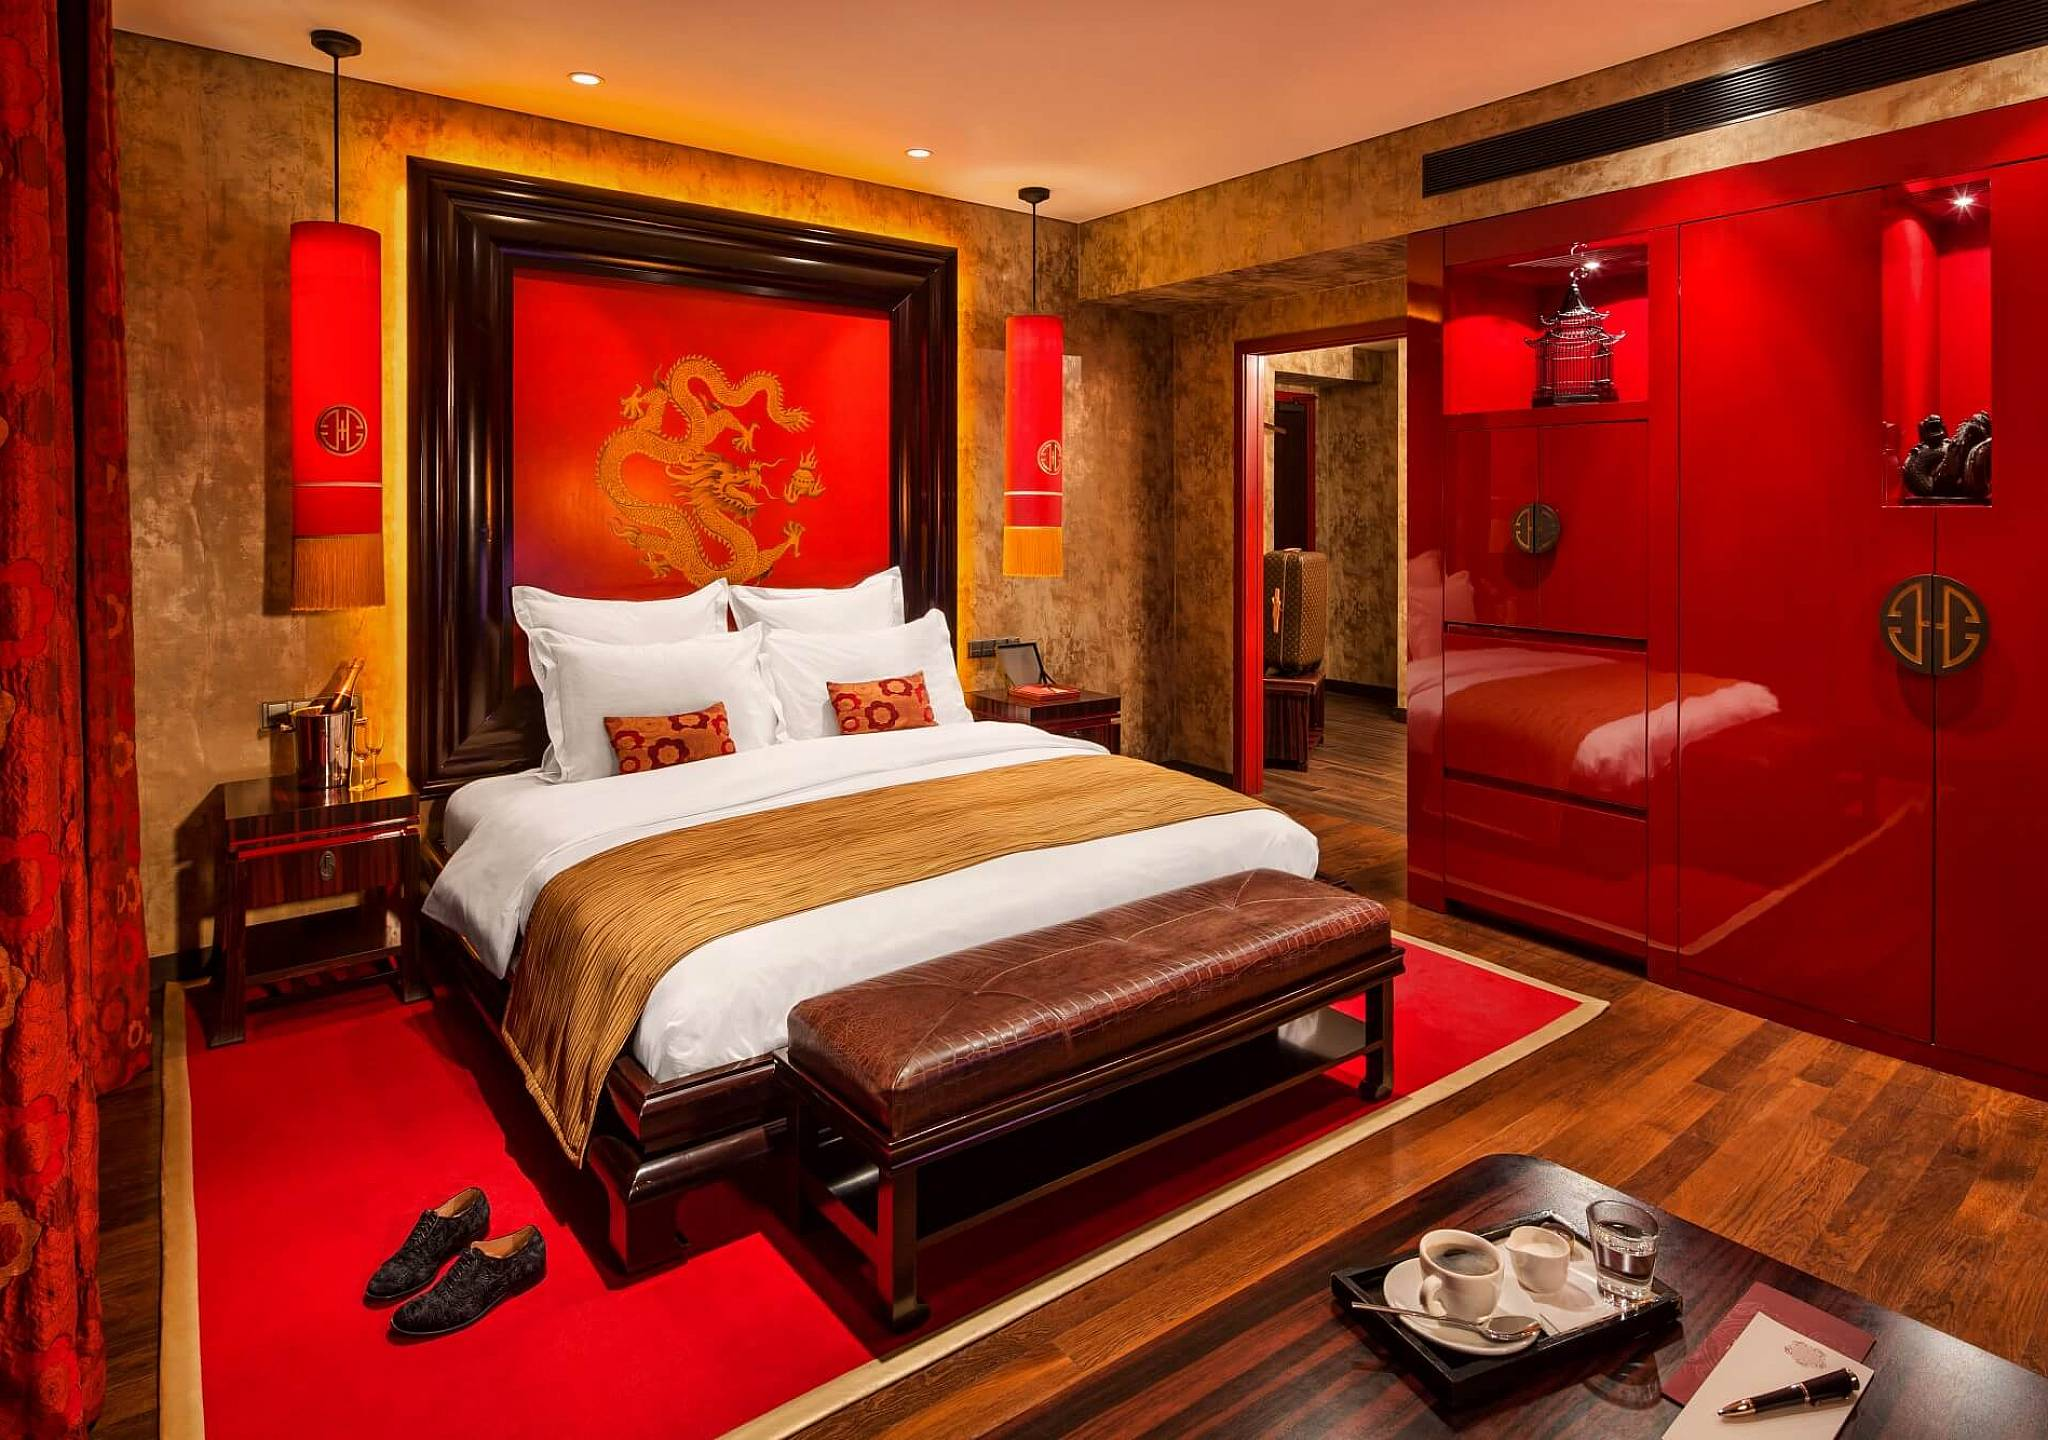 Luxury hotel in prague luxury rooms at buddha bar hotel for Luxury hotels prague